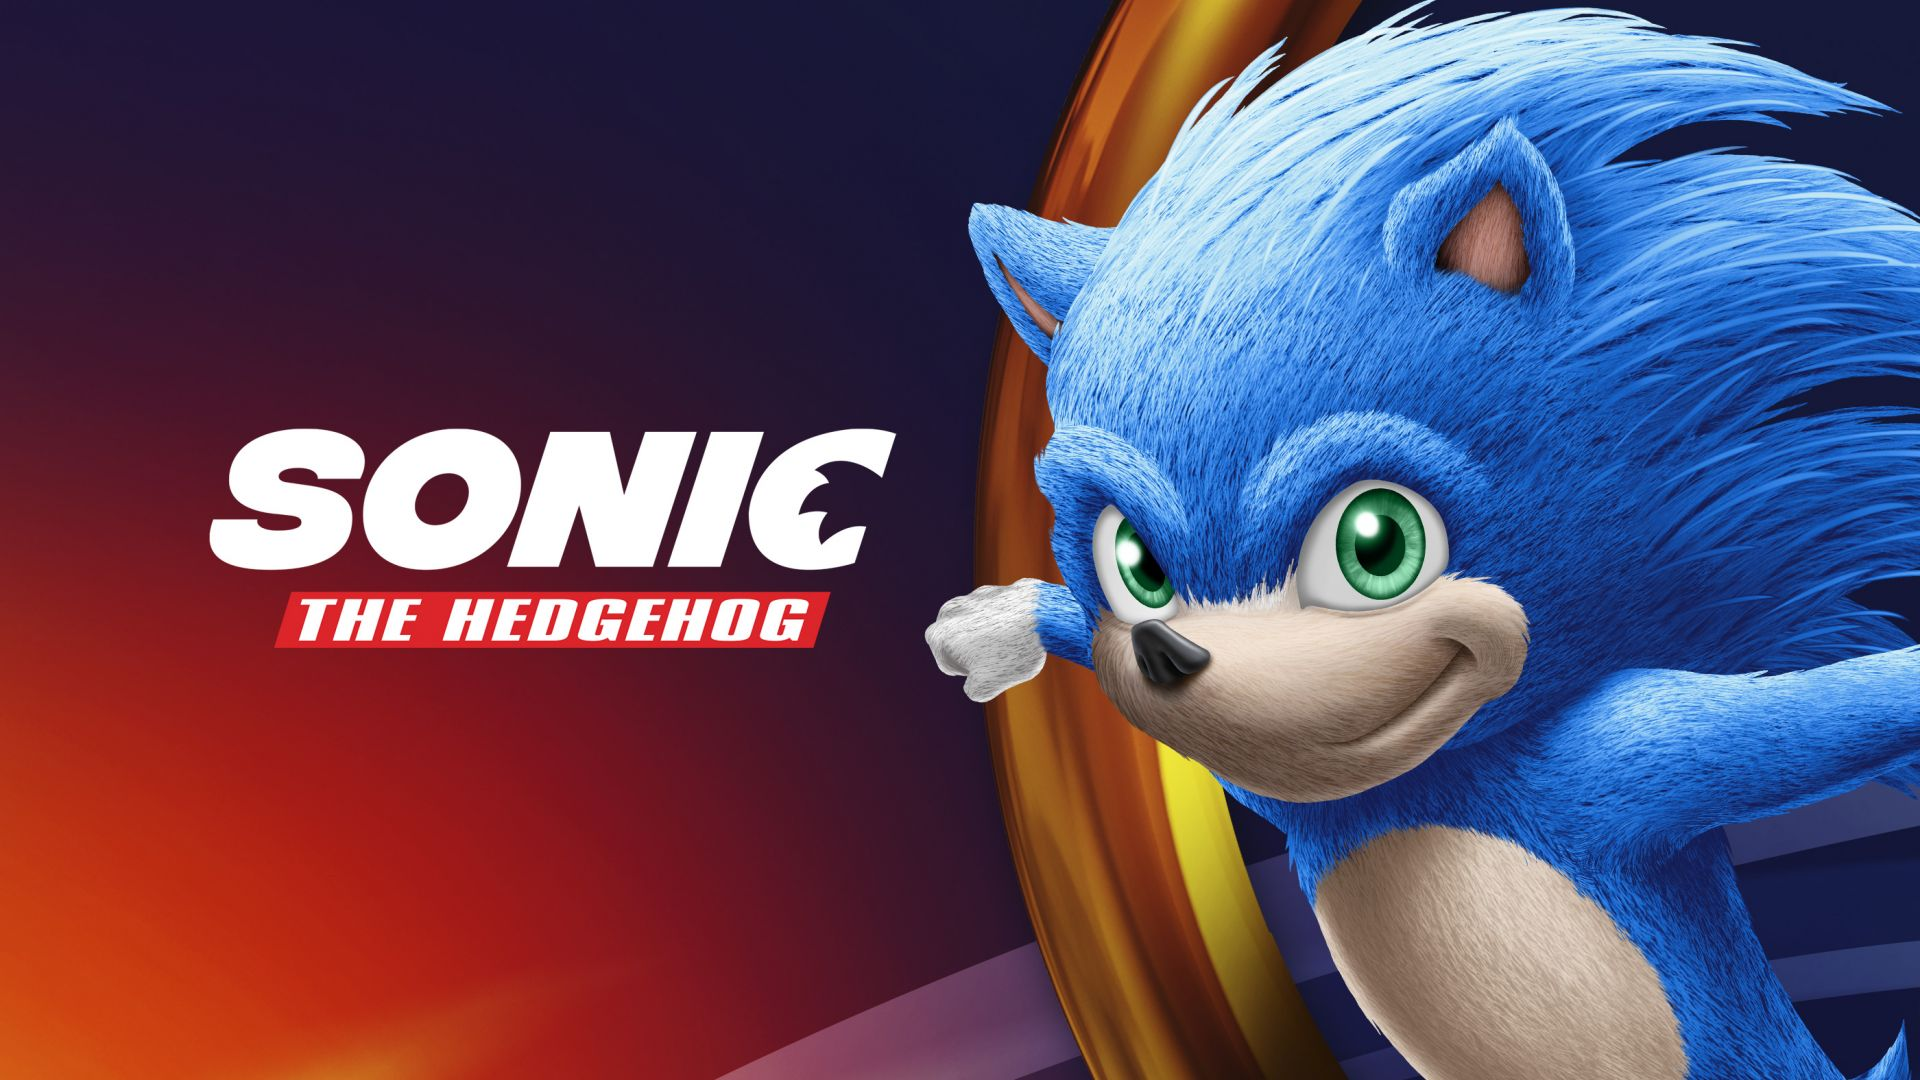 Sonic the Hedgehog, poster, HD, Sonic the Hedgehog, poster, HD (horizontal)